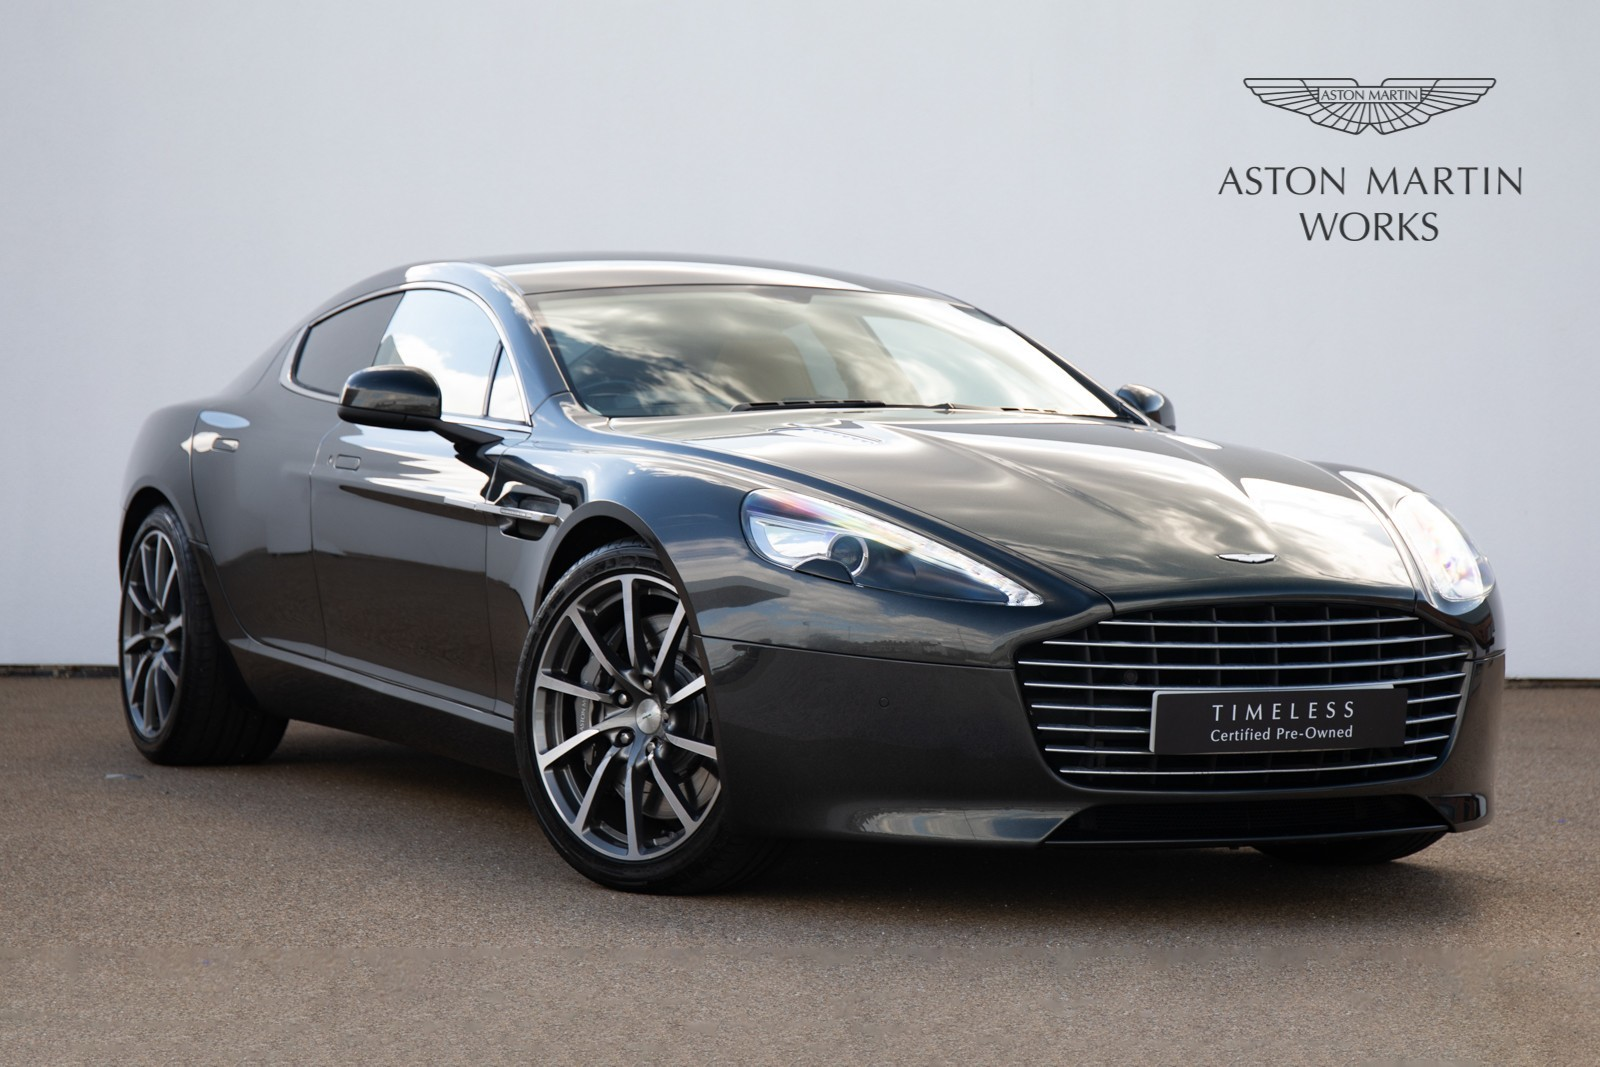 Aston Martin Rapide S Coupe Ceramic Grey Scfhldbs0ggf05218 Used Cars For Sale Aston Martin Works